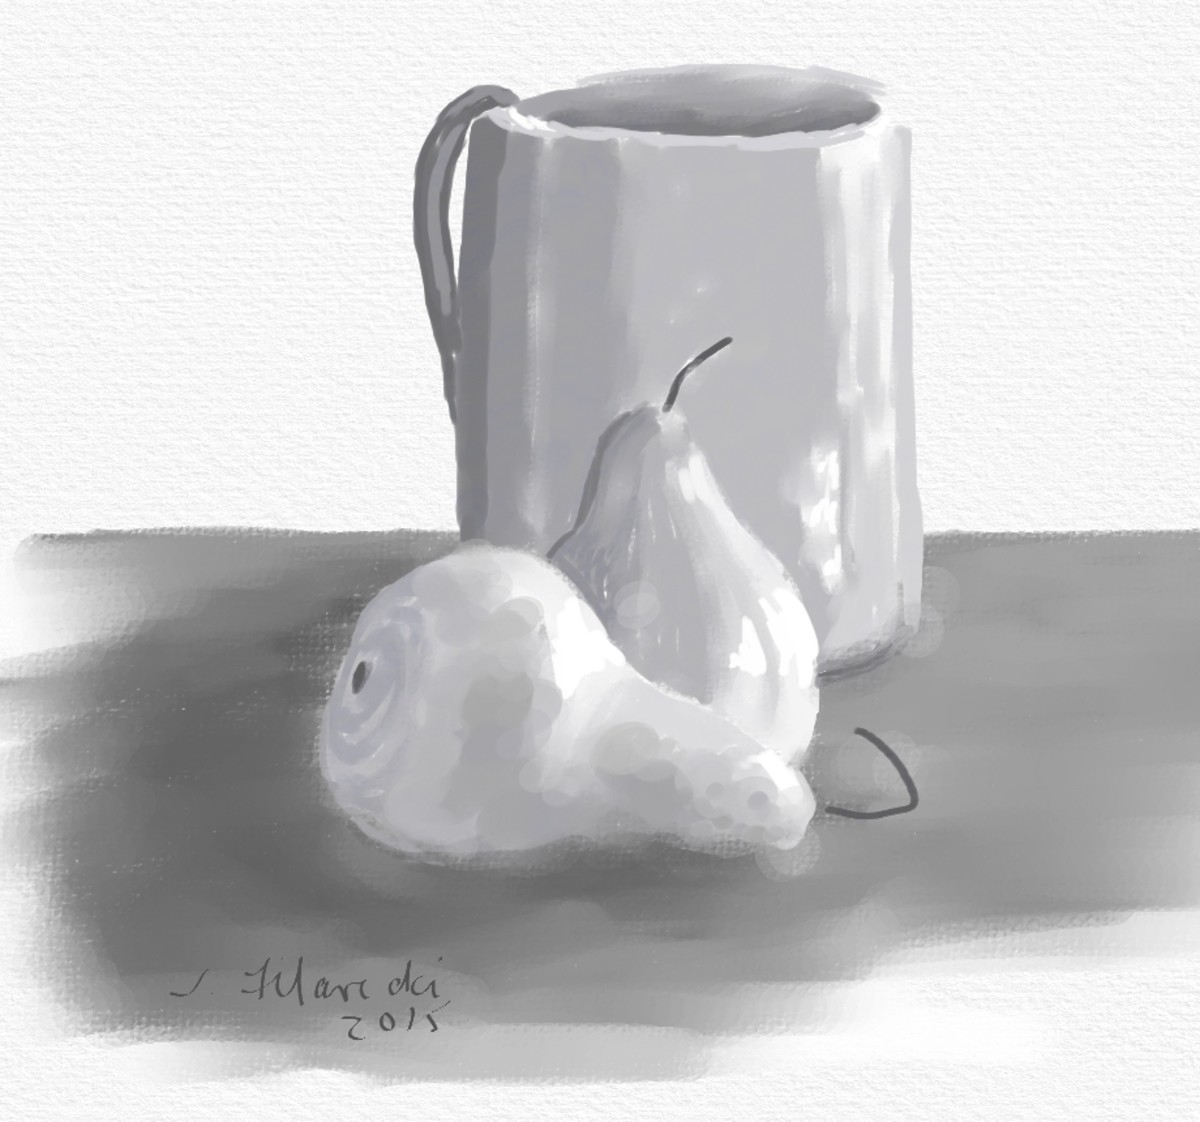 Value painting of two pears and a mug